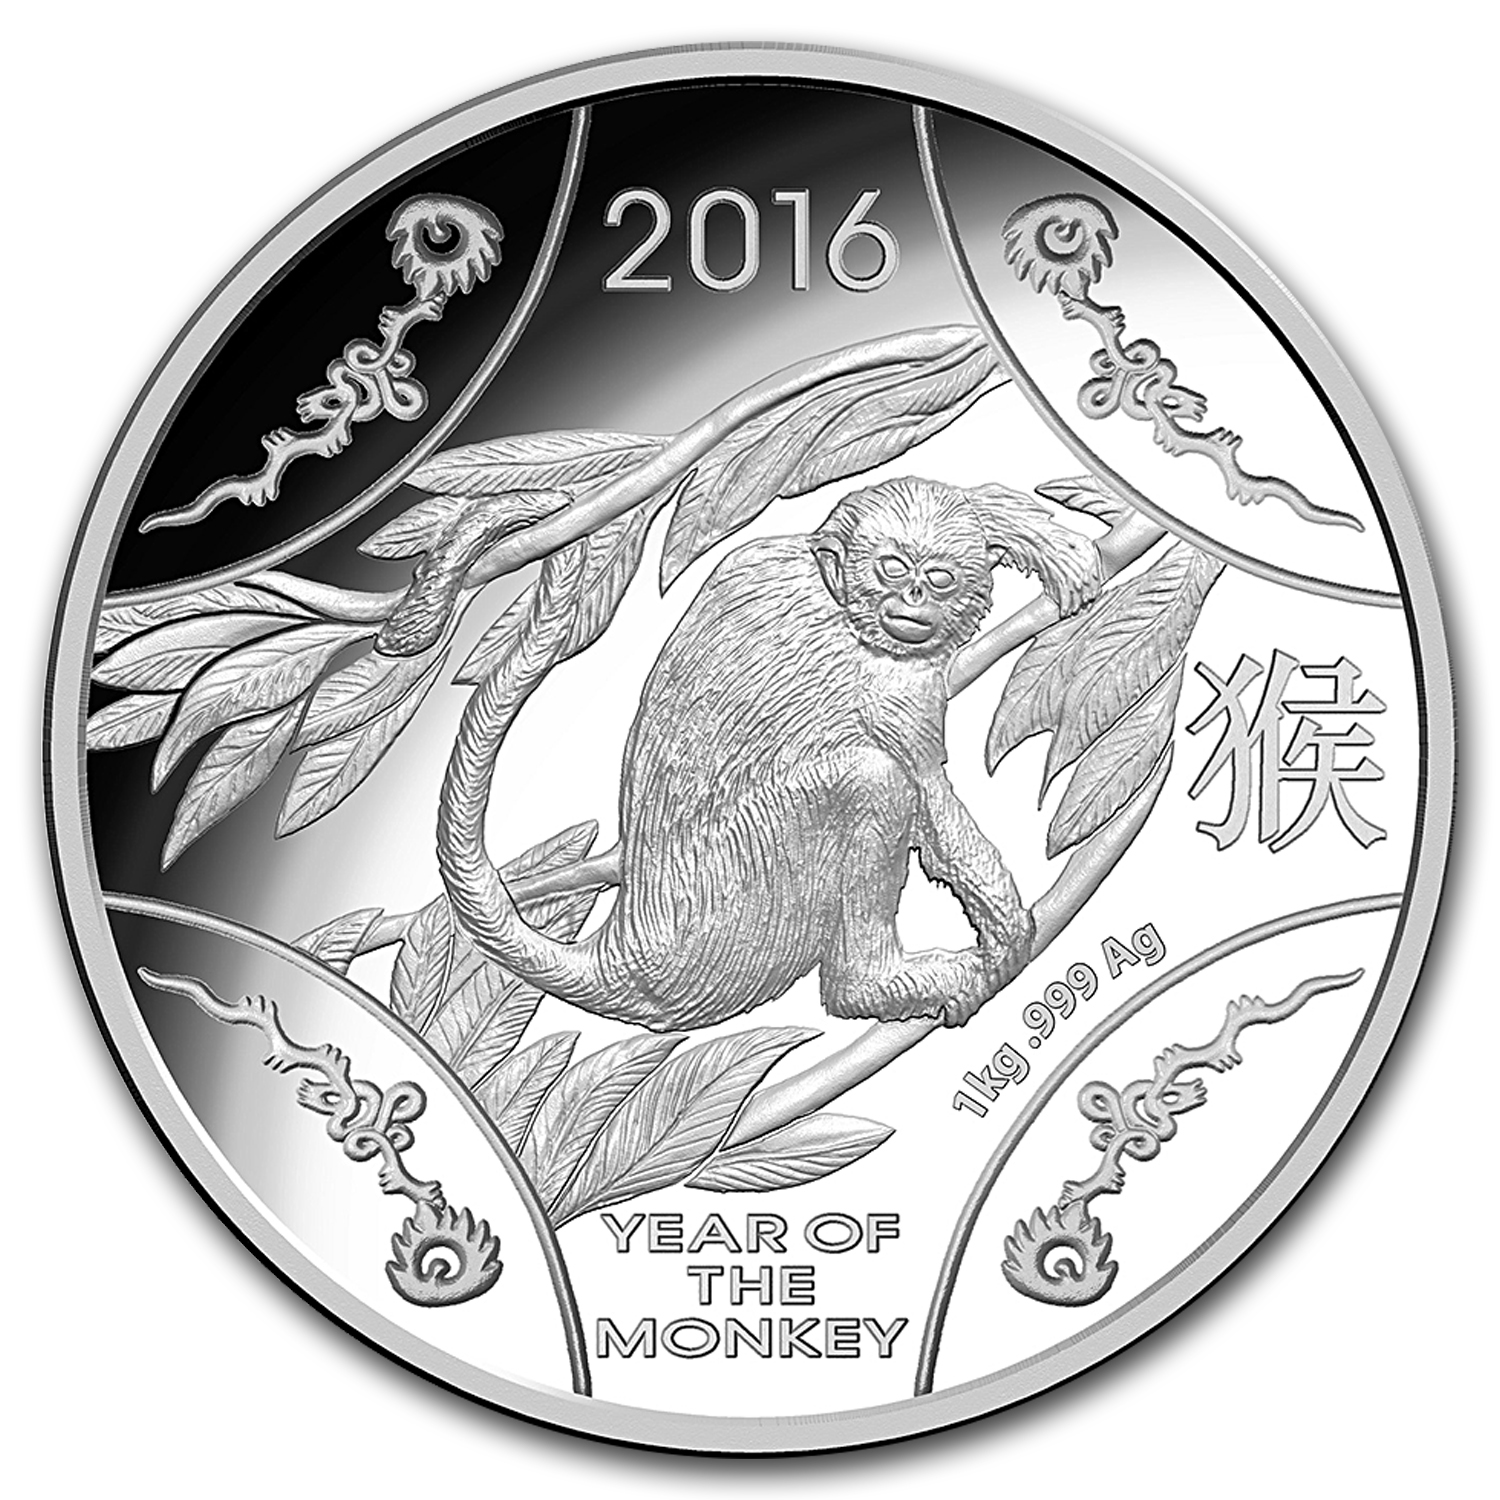 2016 Australia 1 kilo Silver Year of the Monkey Proof